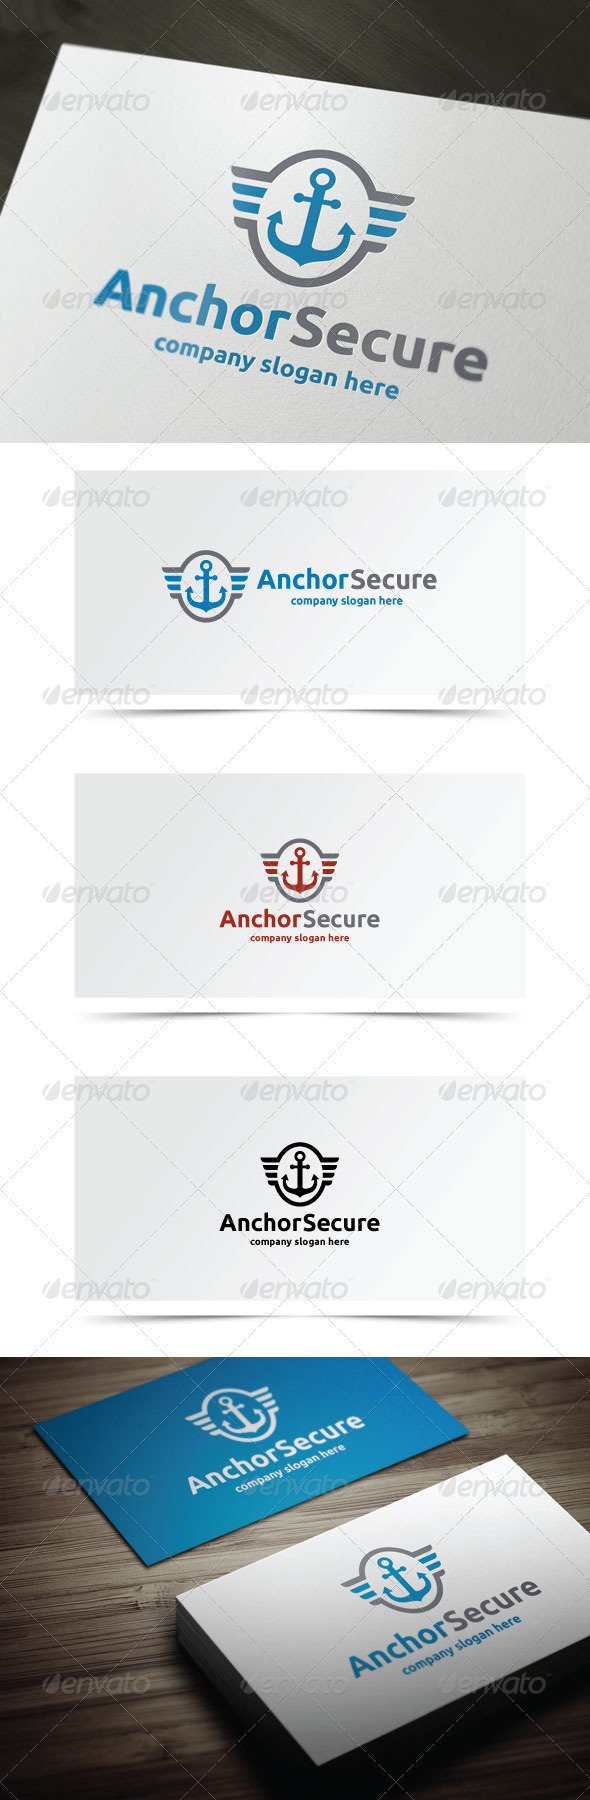 GraphicRiver Anchor Secure 8296288